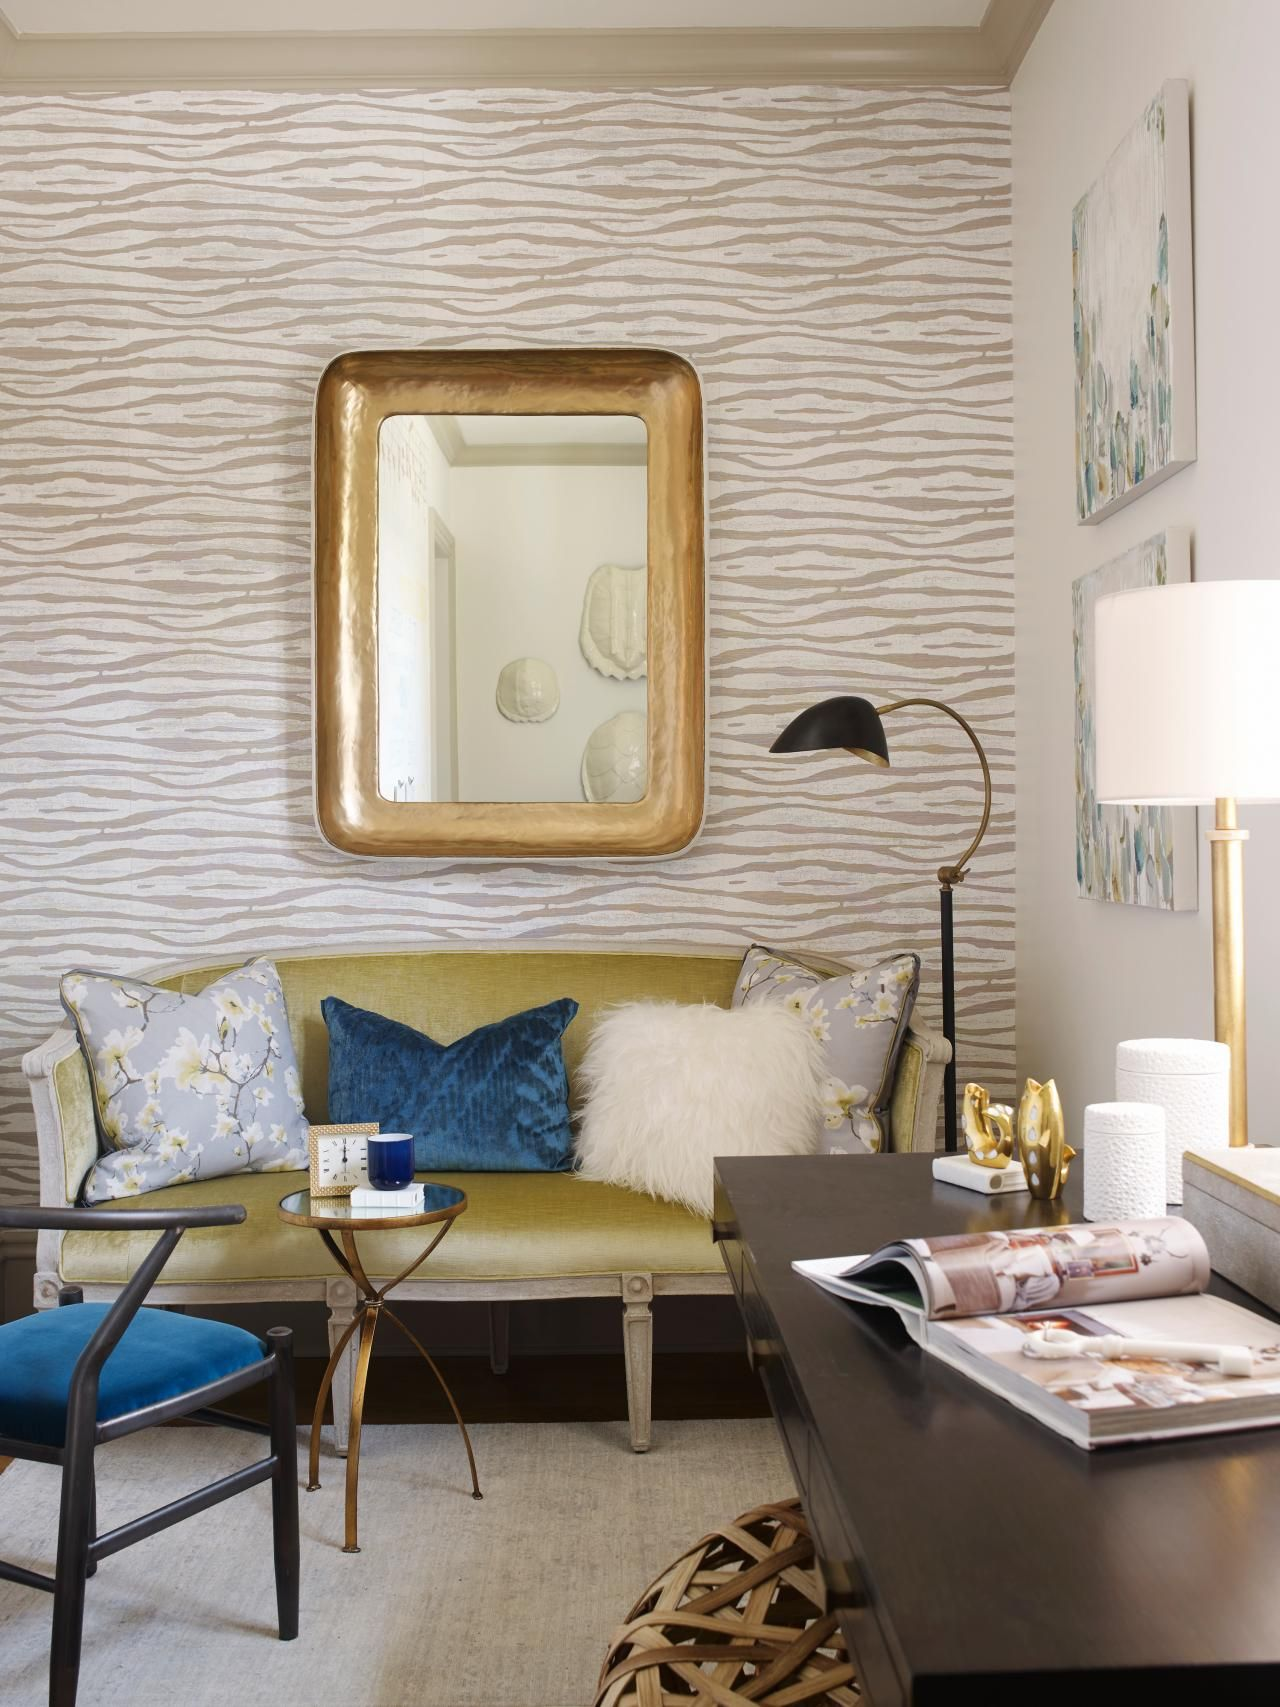 House and garden interiors - Peek Into The 2015 Atlanta Decorators Show House And Gardens